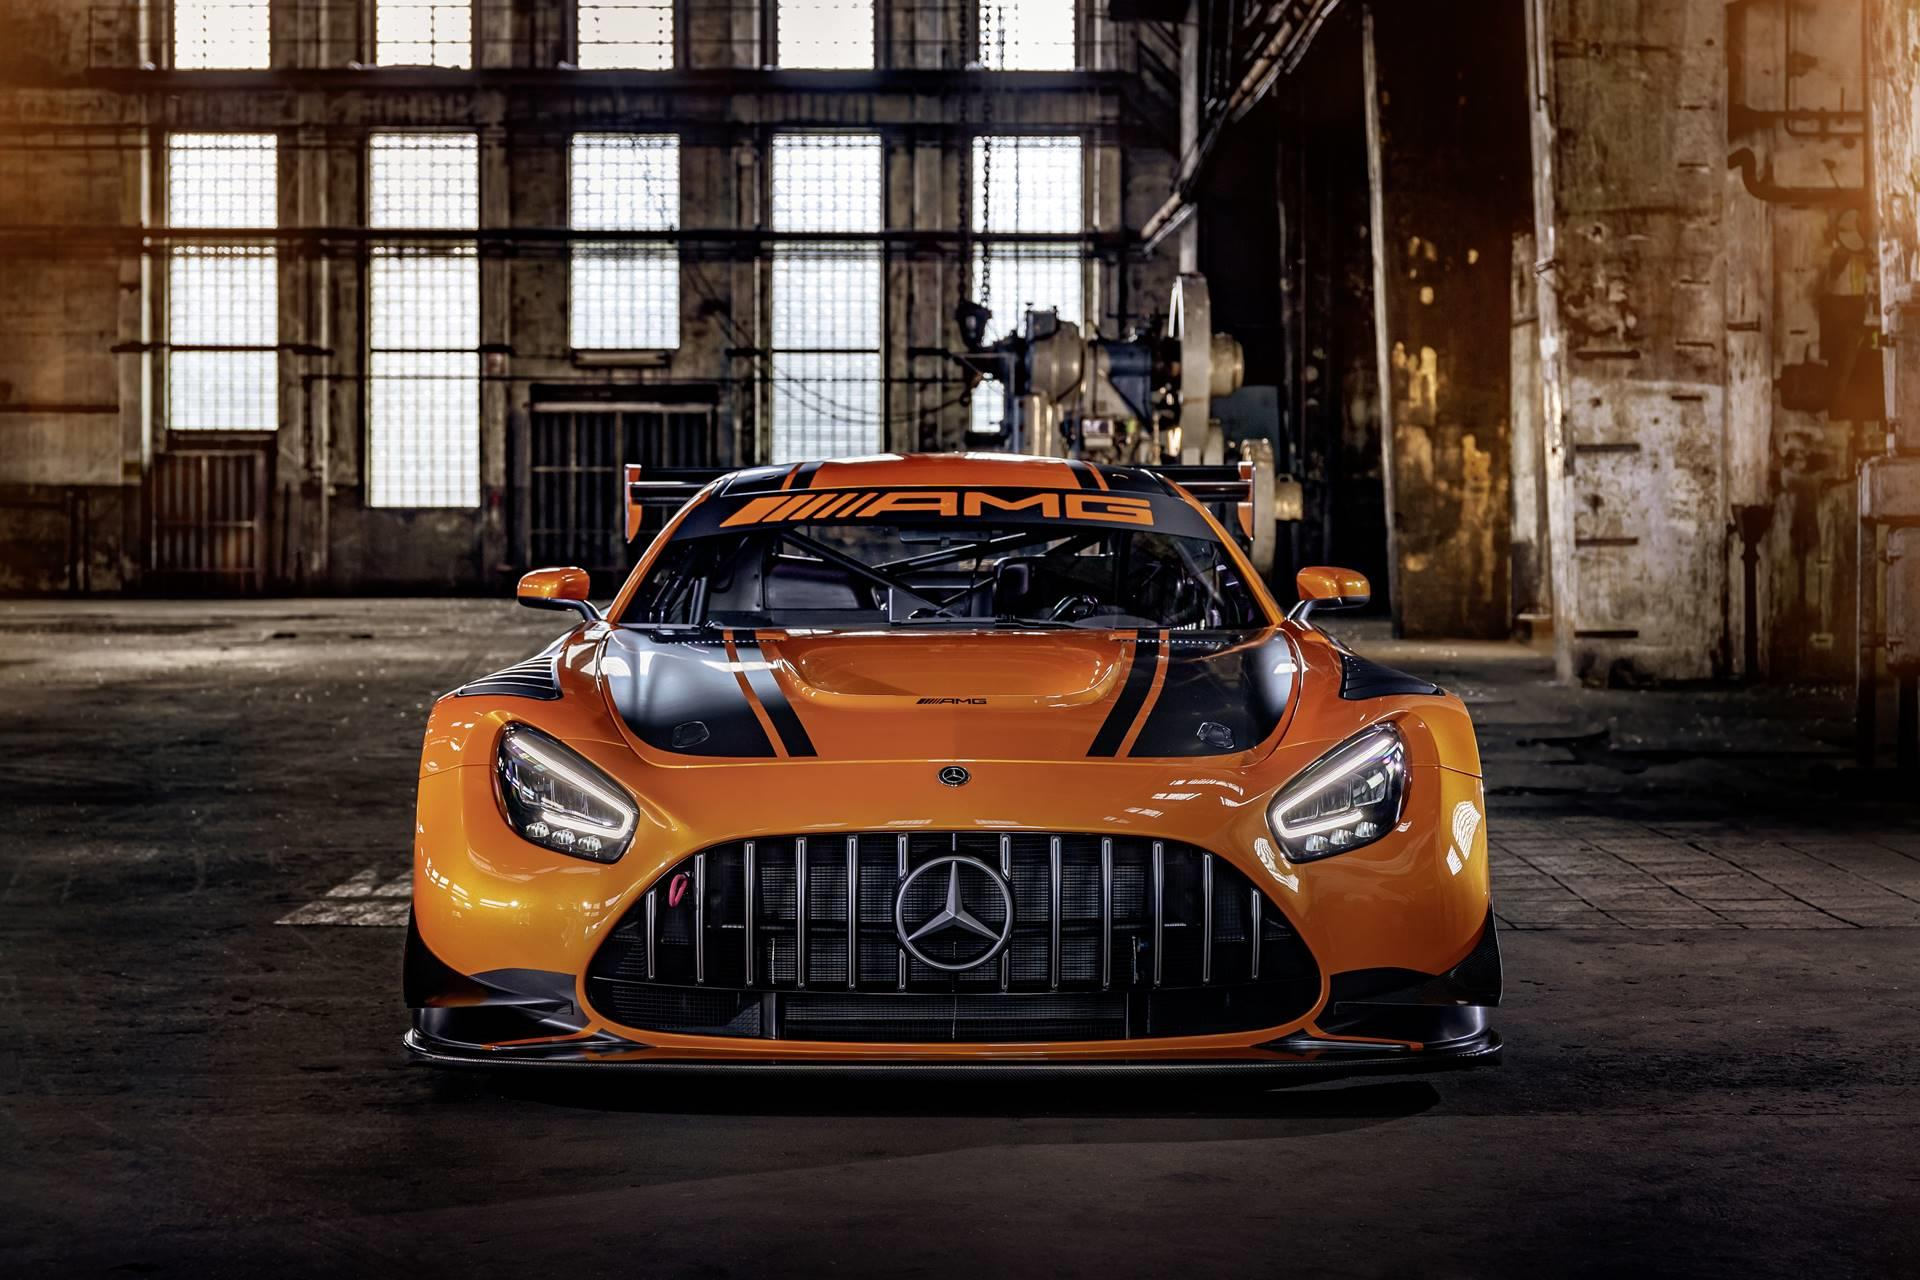 Lamborghini Suv Price >> 2019 Mercedes-Benz AMG GT3 Evo News and Information ...